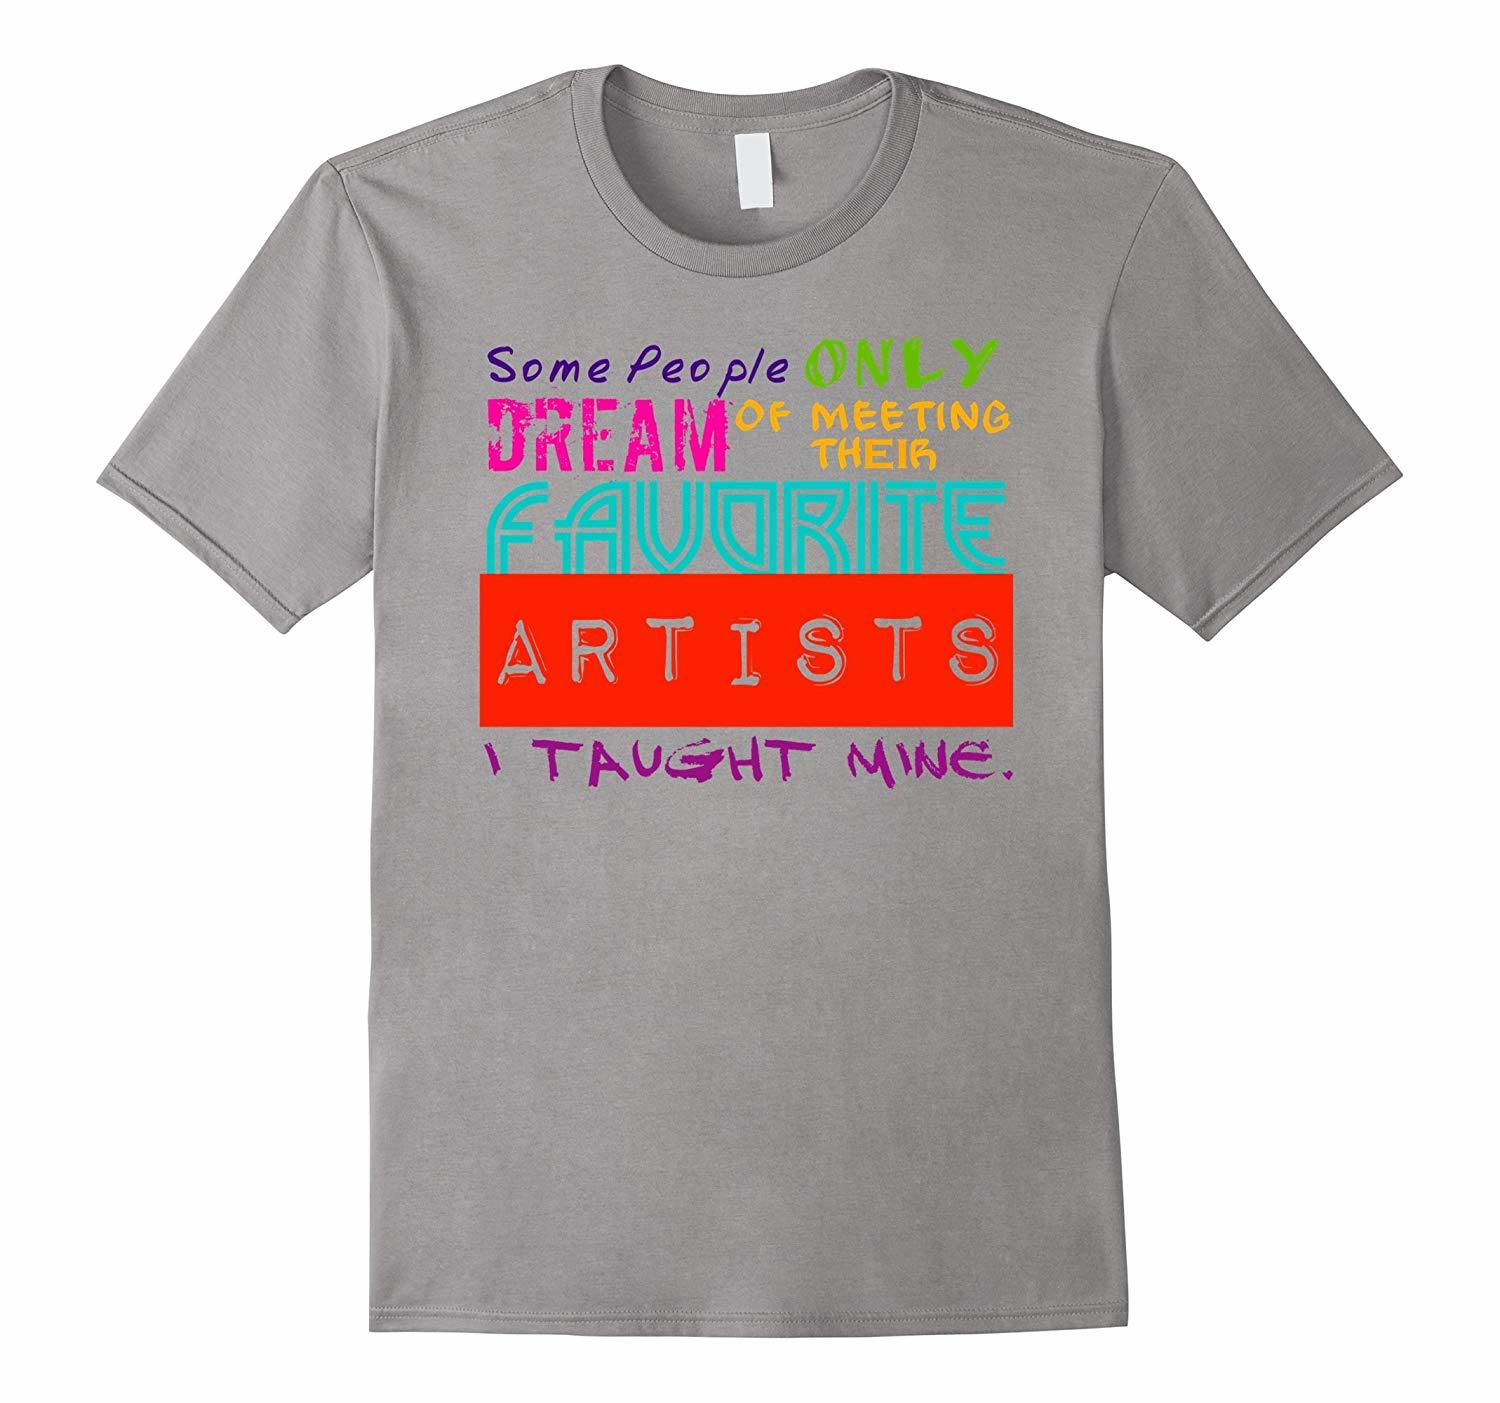 Funny Shirt - Art Teacher T-Shirt Some People Only Dream of Meeting Their Men